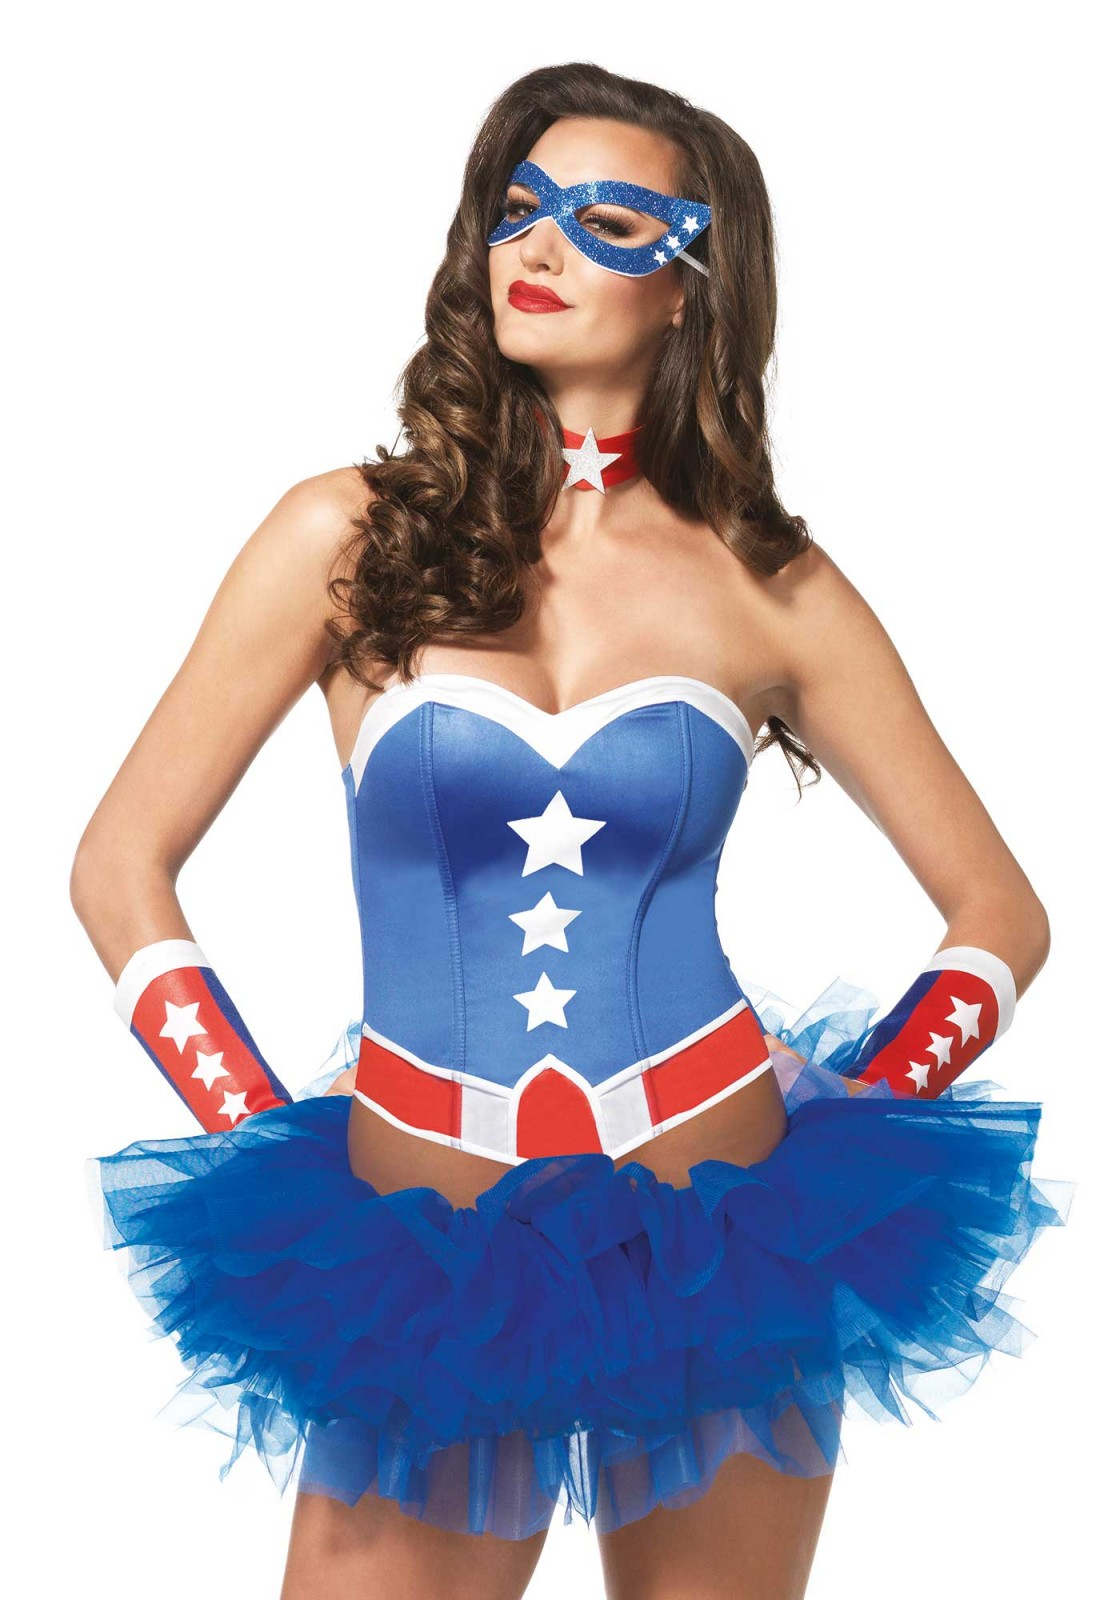 This American hero stepped right out a comic book. This marvel super hero accessoiries kit includes a patriotic bustier with star accenst, arm cuffs, star choker and matching eye mask. Please take not that the tutu is not included.